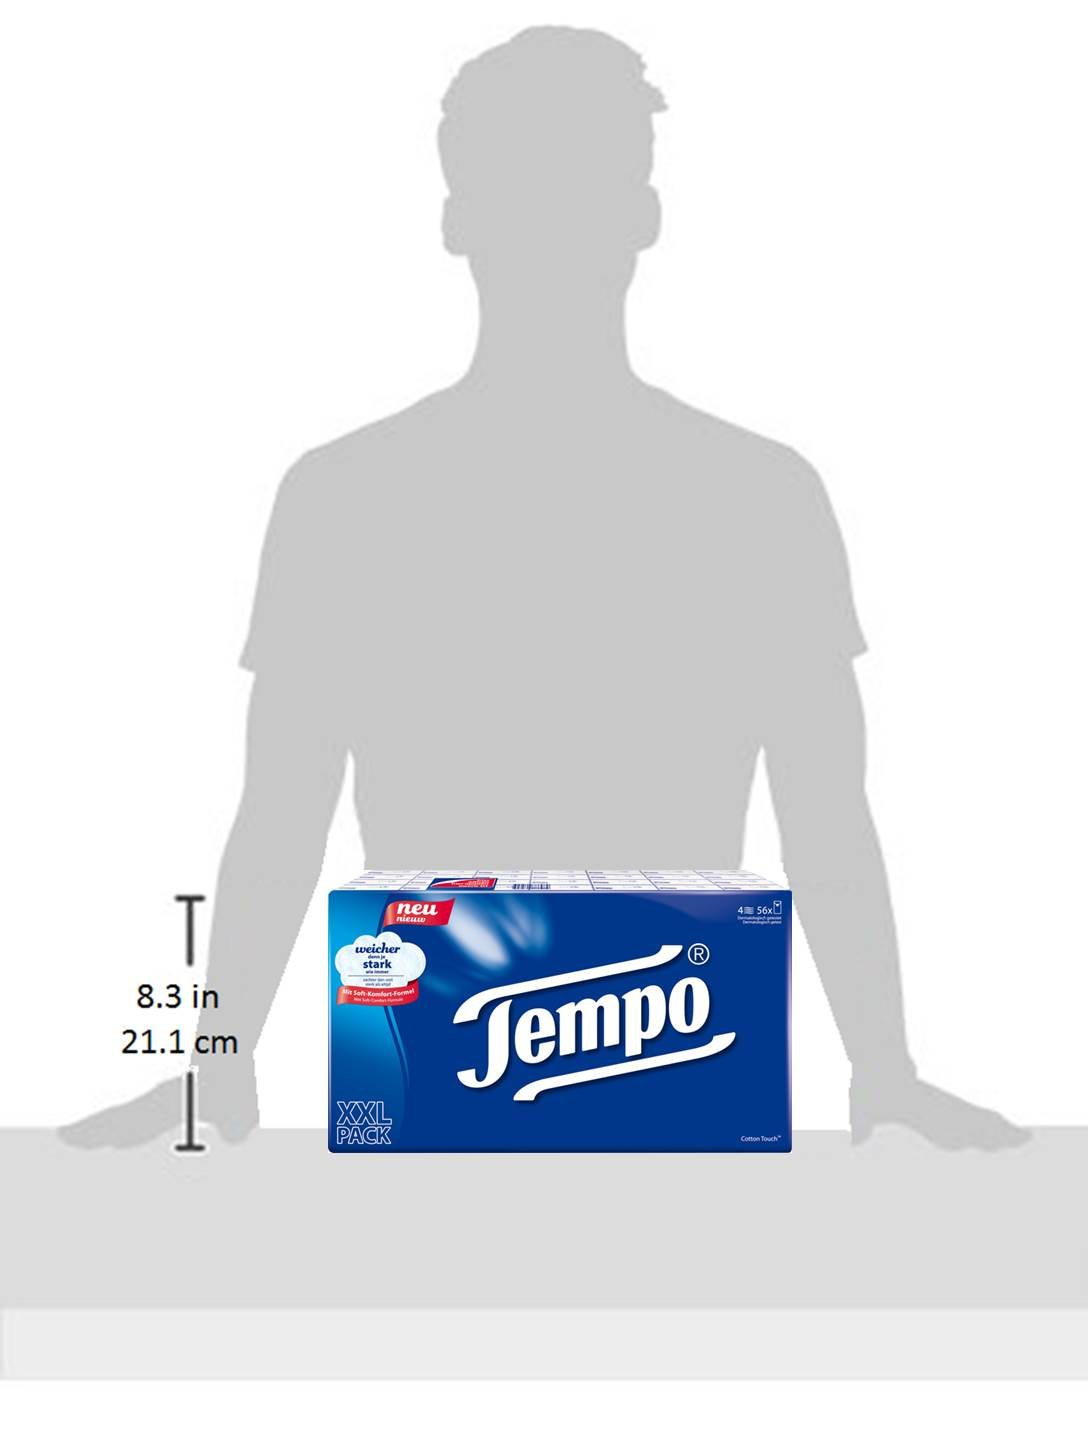 Tempo Classic Tissues 56 x 10 Tissues, (56 Packs) by Tempo